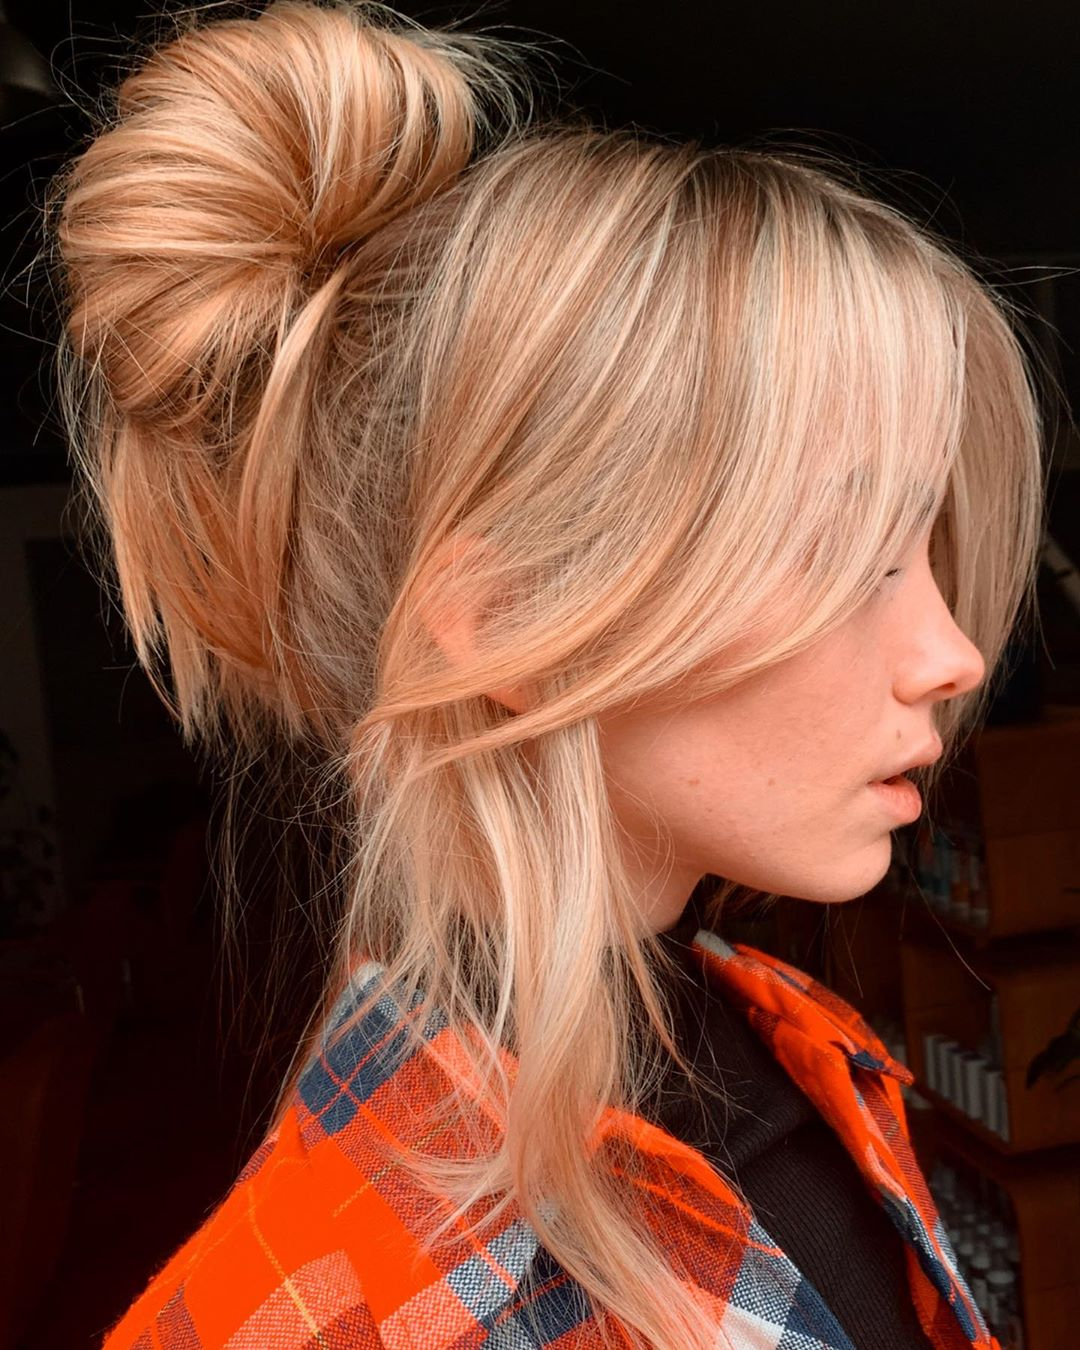 Loopy Bun Updo with Bangs